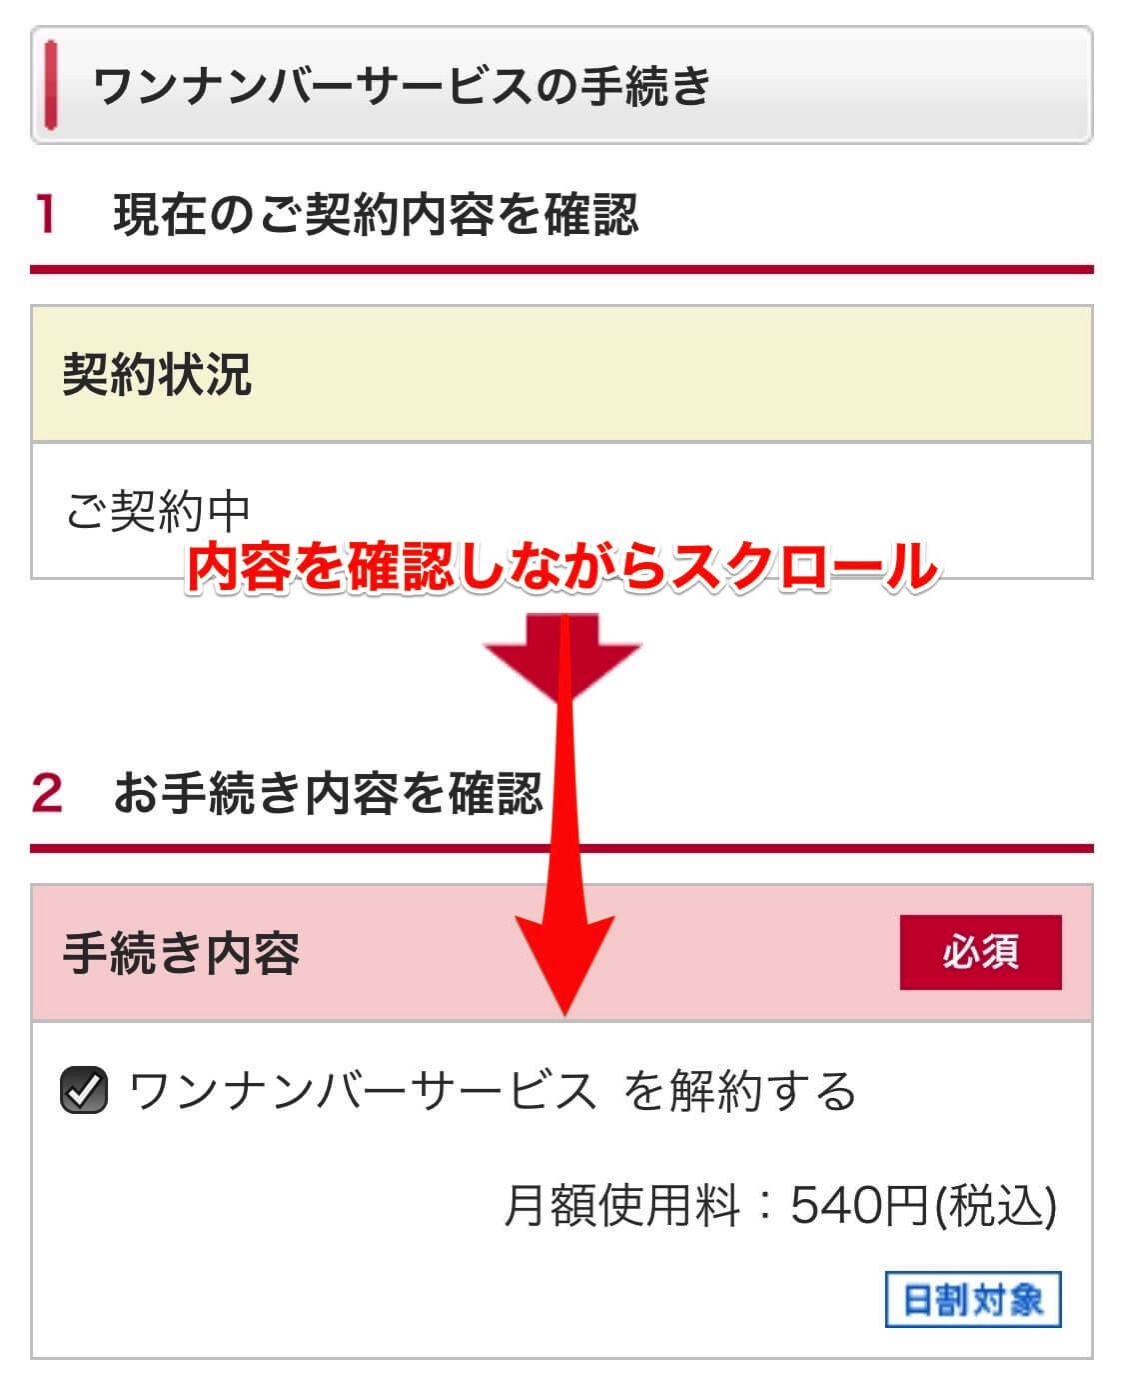 The docomo one number service cancellation of a contract 6